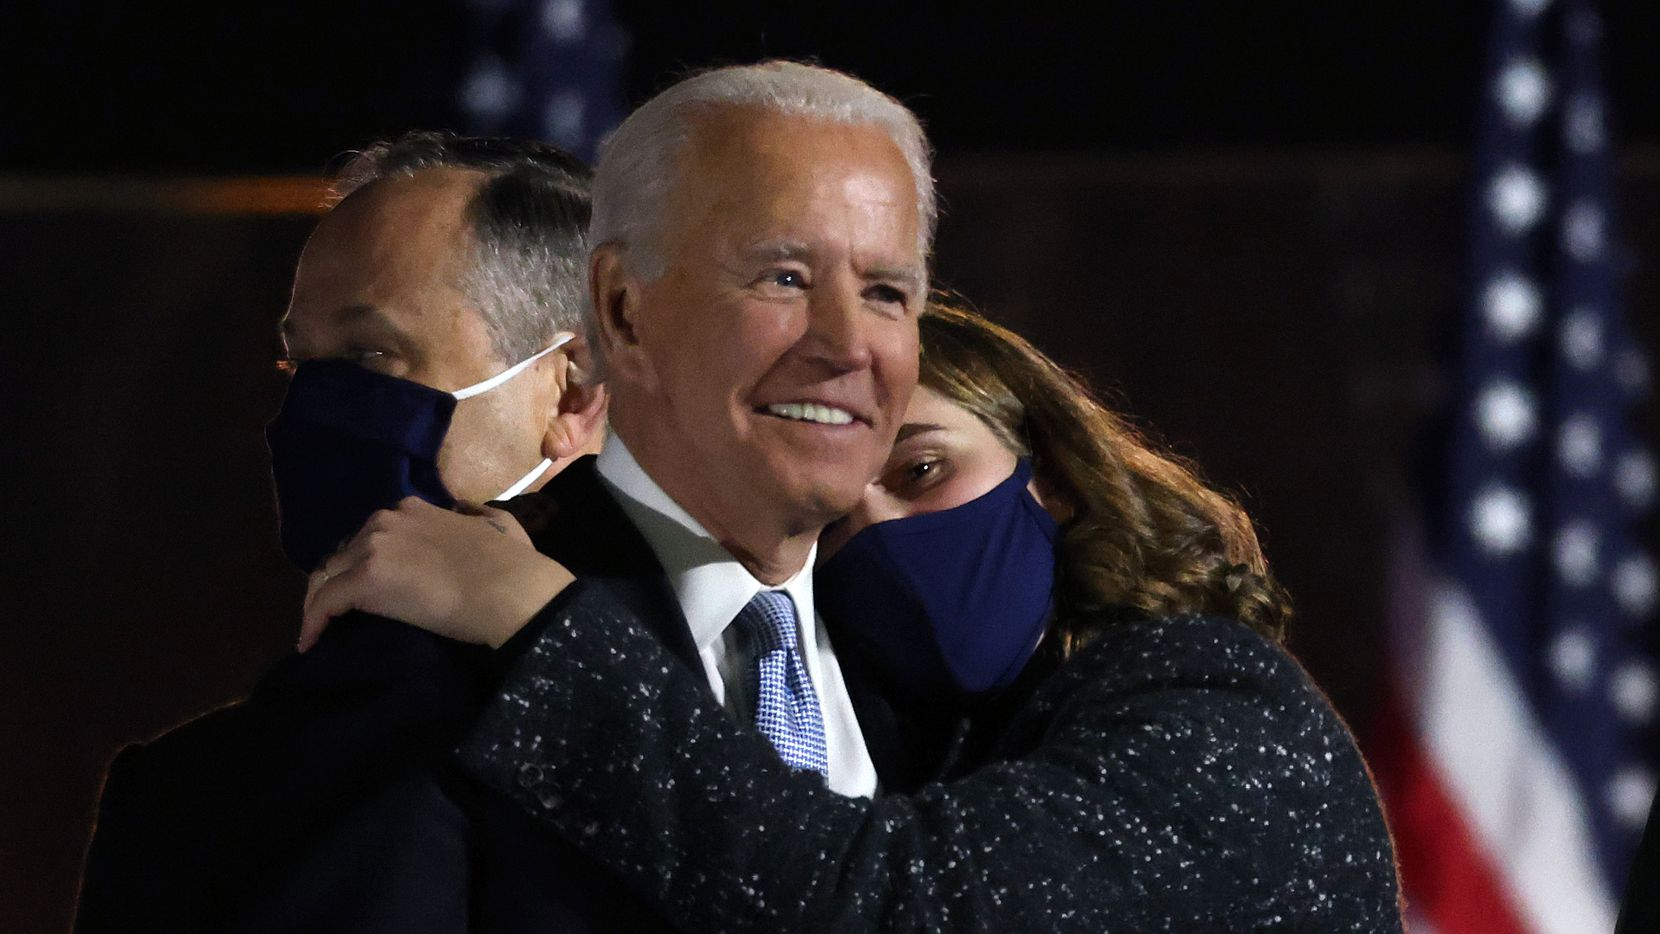 President-elect Joe Biden gets a hug from his granddaughter after delivering his victory address at the Chase Center Nov. 7, 2020 in Wilmington, Del. After four days of counting the high volume of mail-in ballots in key battleground states due to the coronavirus pandemic, Biden defeated President Donald Trump.